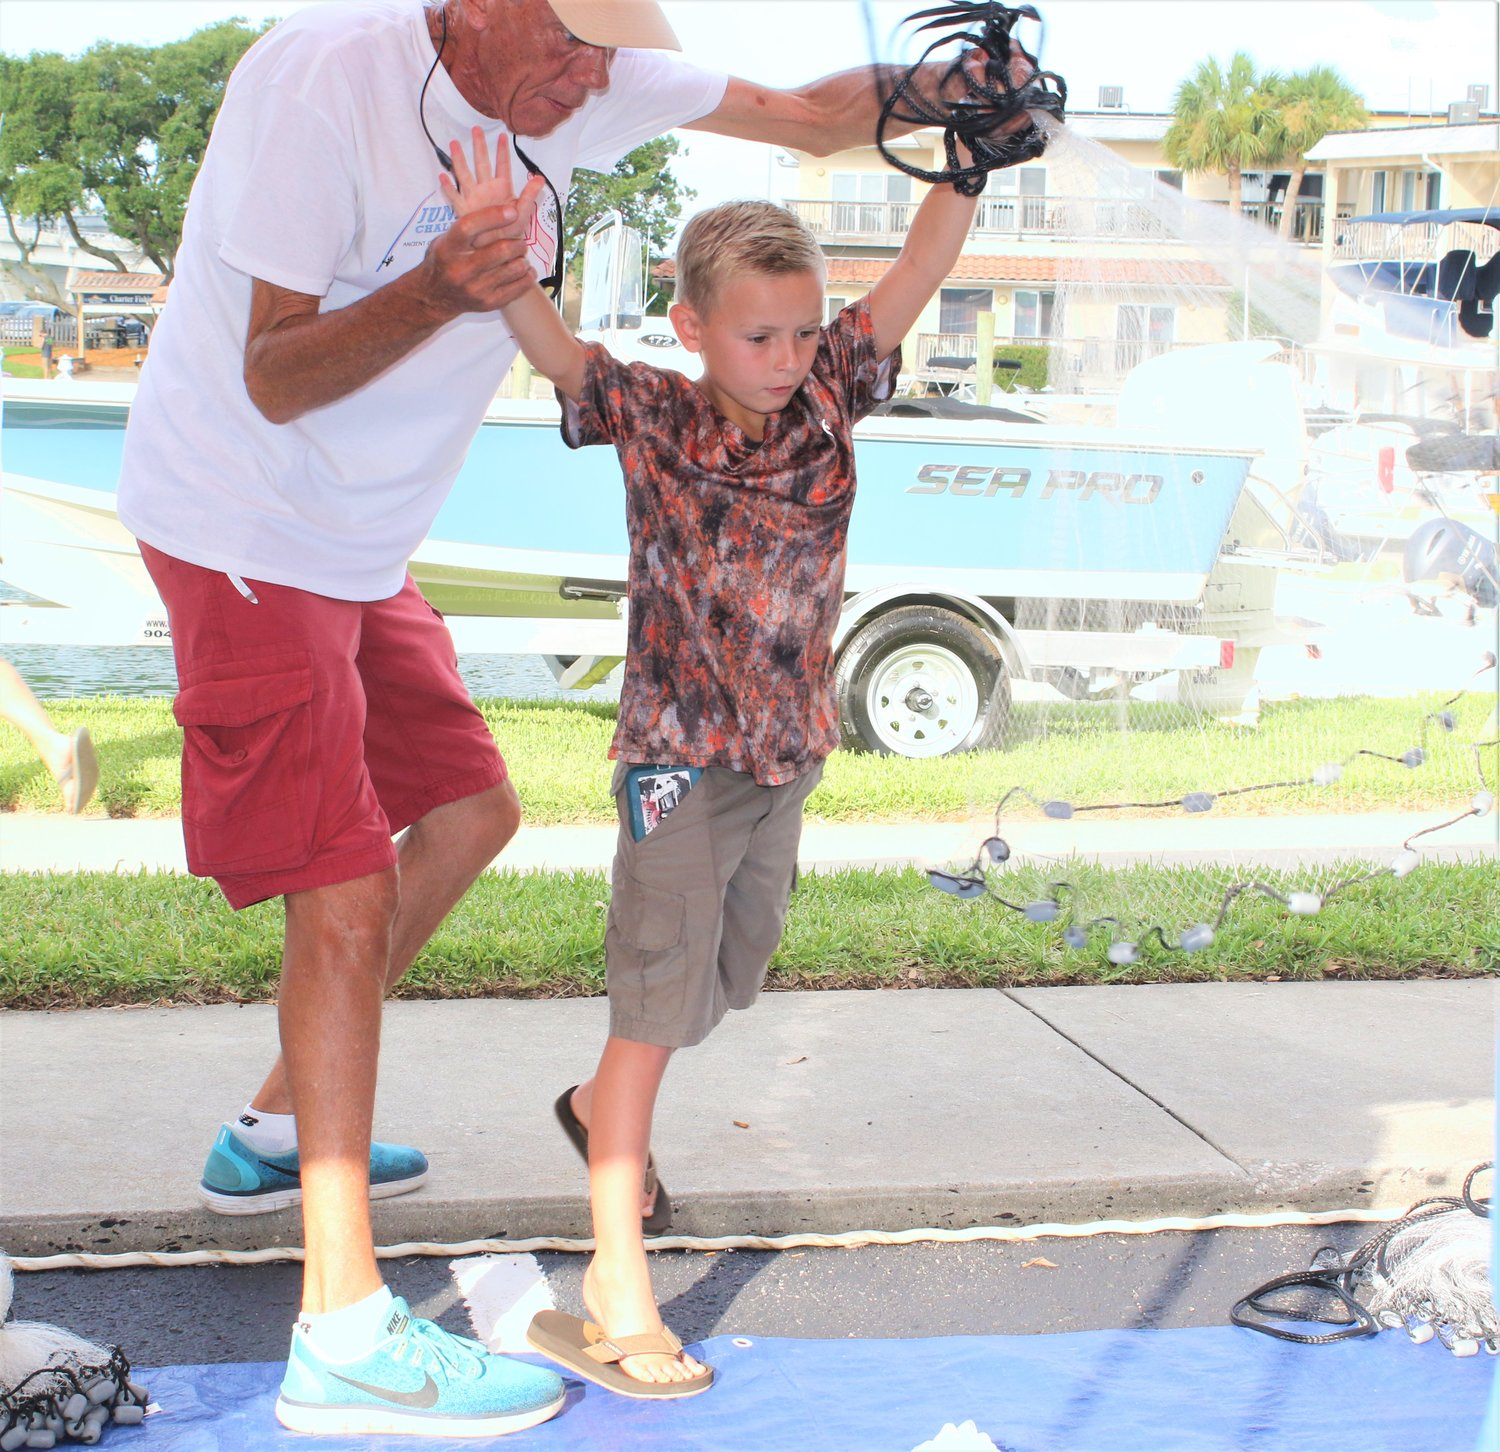 Nine-year-old Matthew Padgett learns to throw a cast at the ACGFA Kids' Clinic in June. Matthew has been a top contender in past Junior Backwater Challenge events but had never caught a kingfish. He put a 10.5-king on the board in the 2019 Junior Kingfish Challenge.